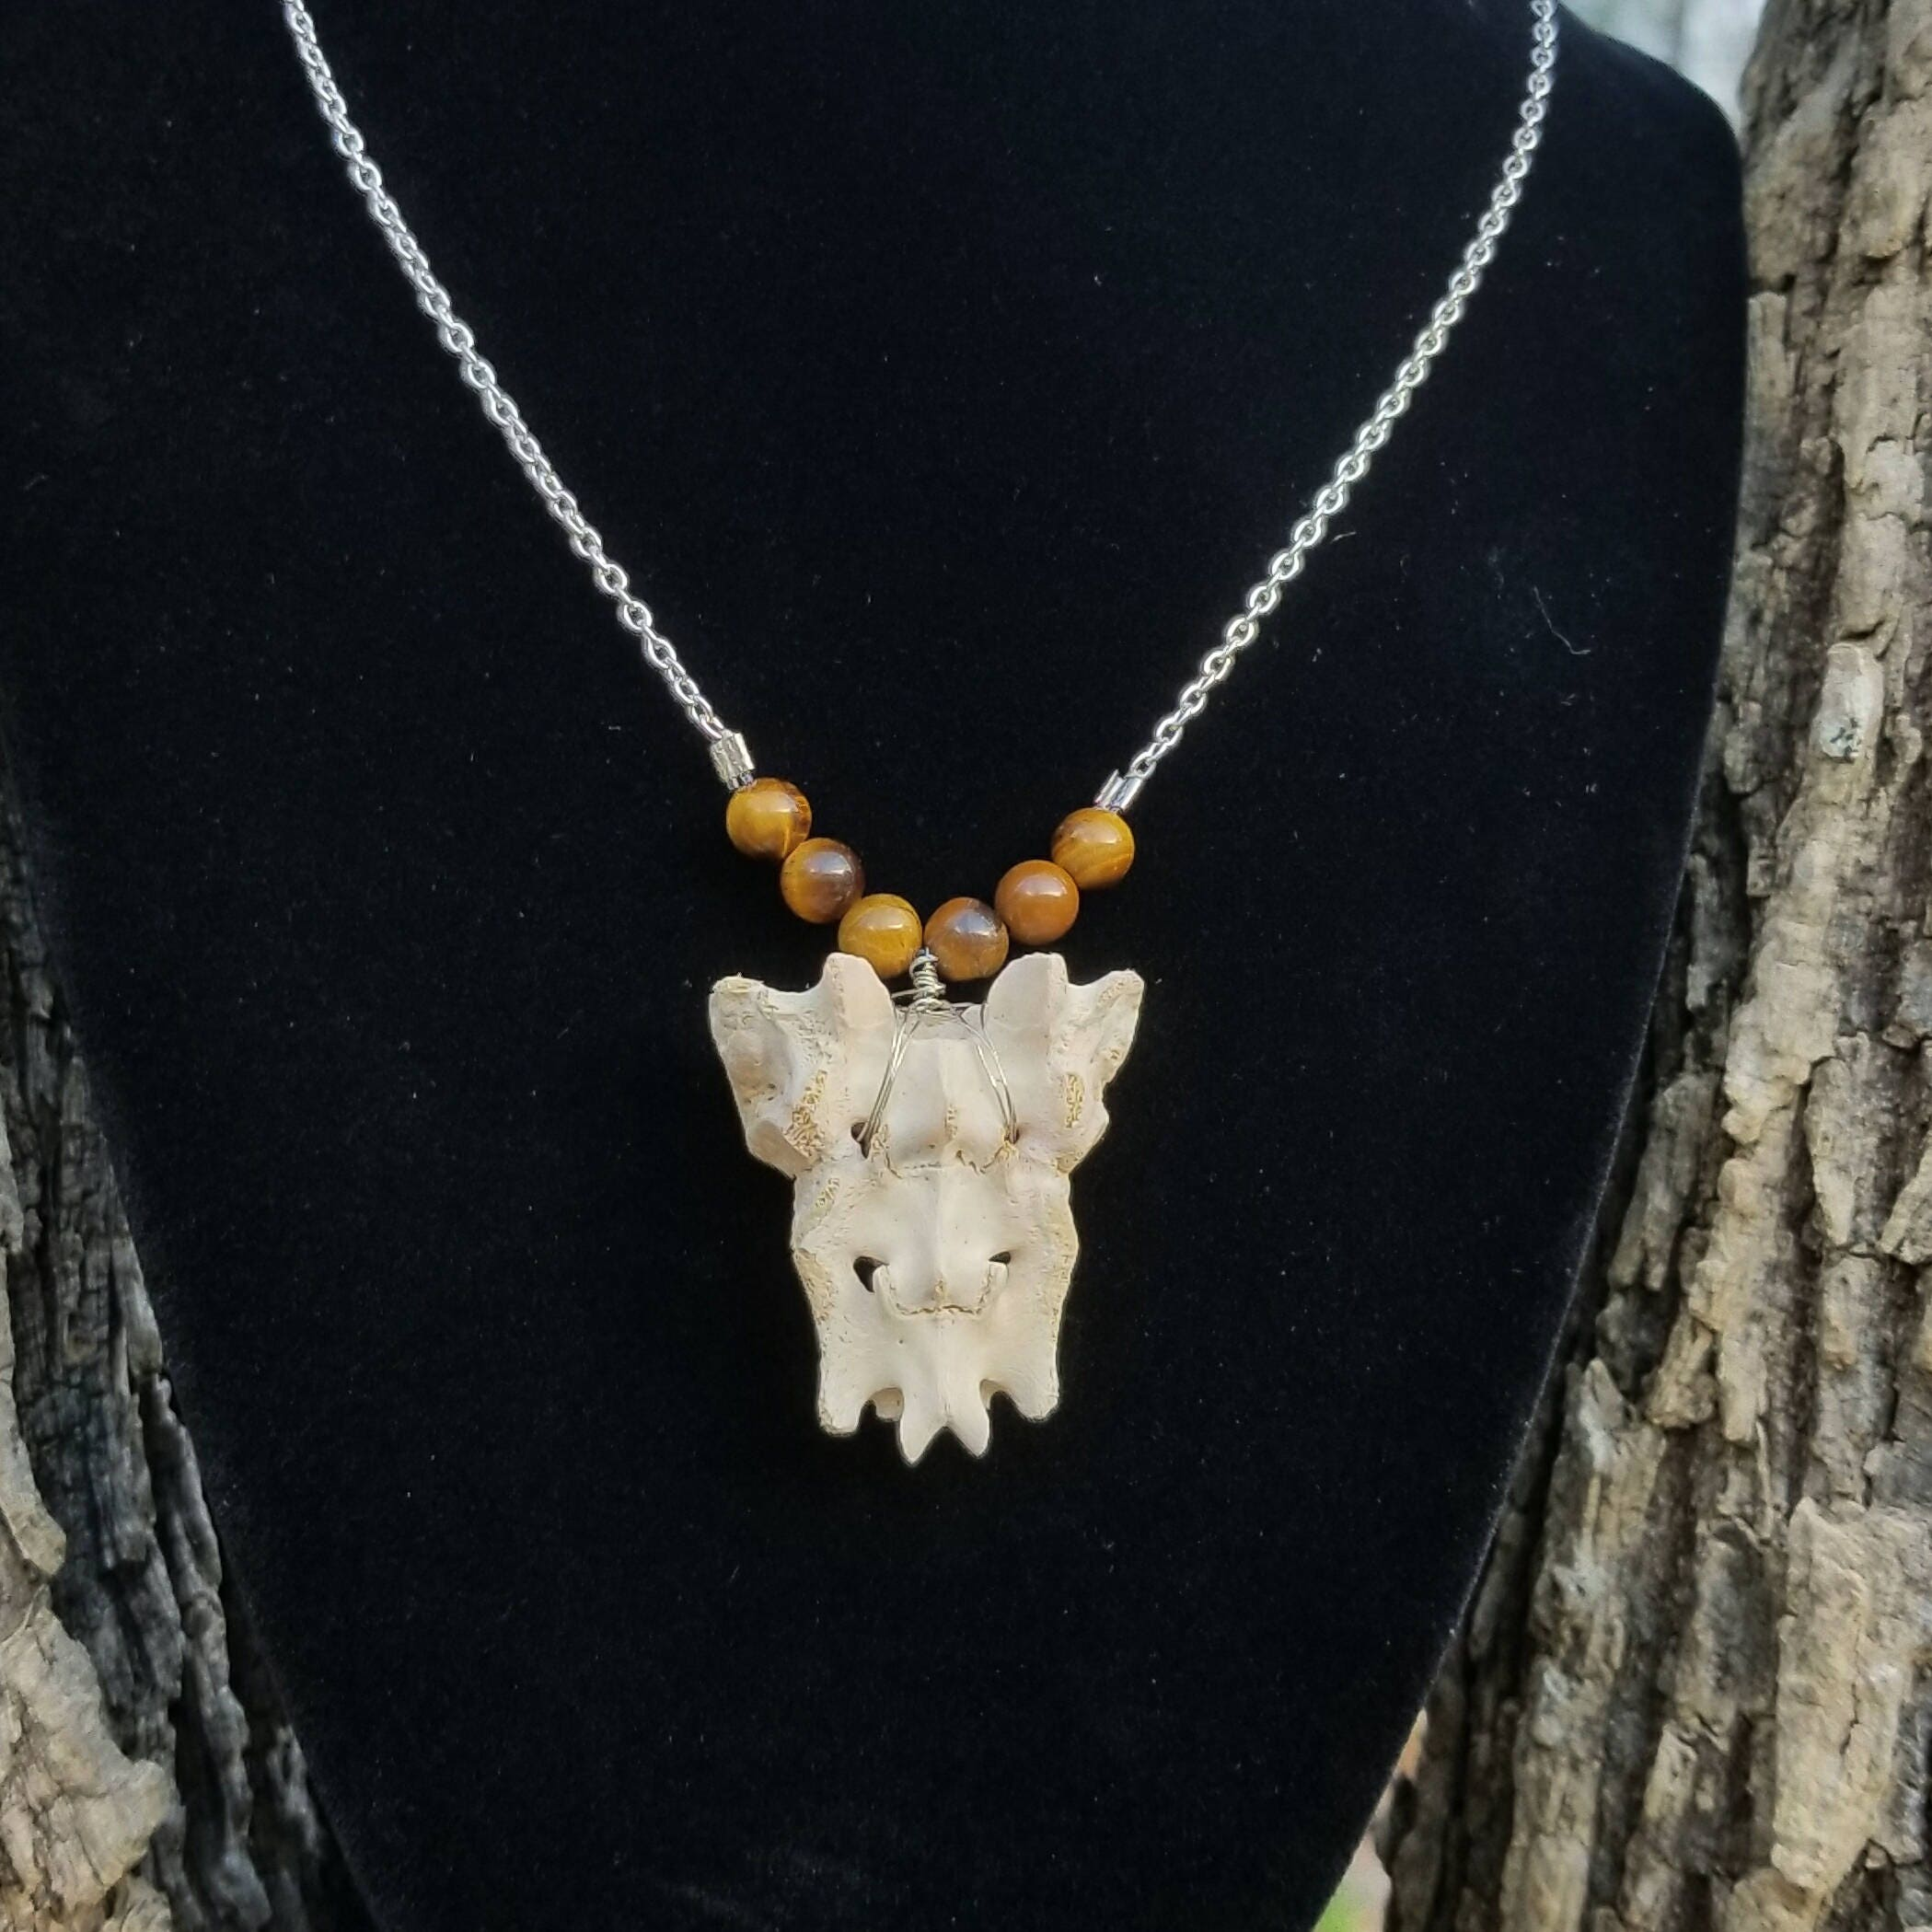 ksvhs necklace pretty jewellery bone tooth shark real